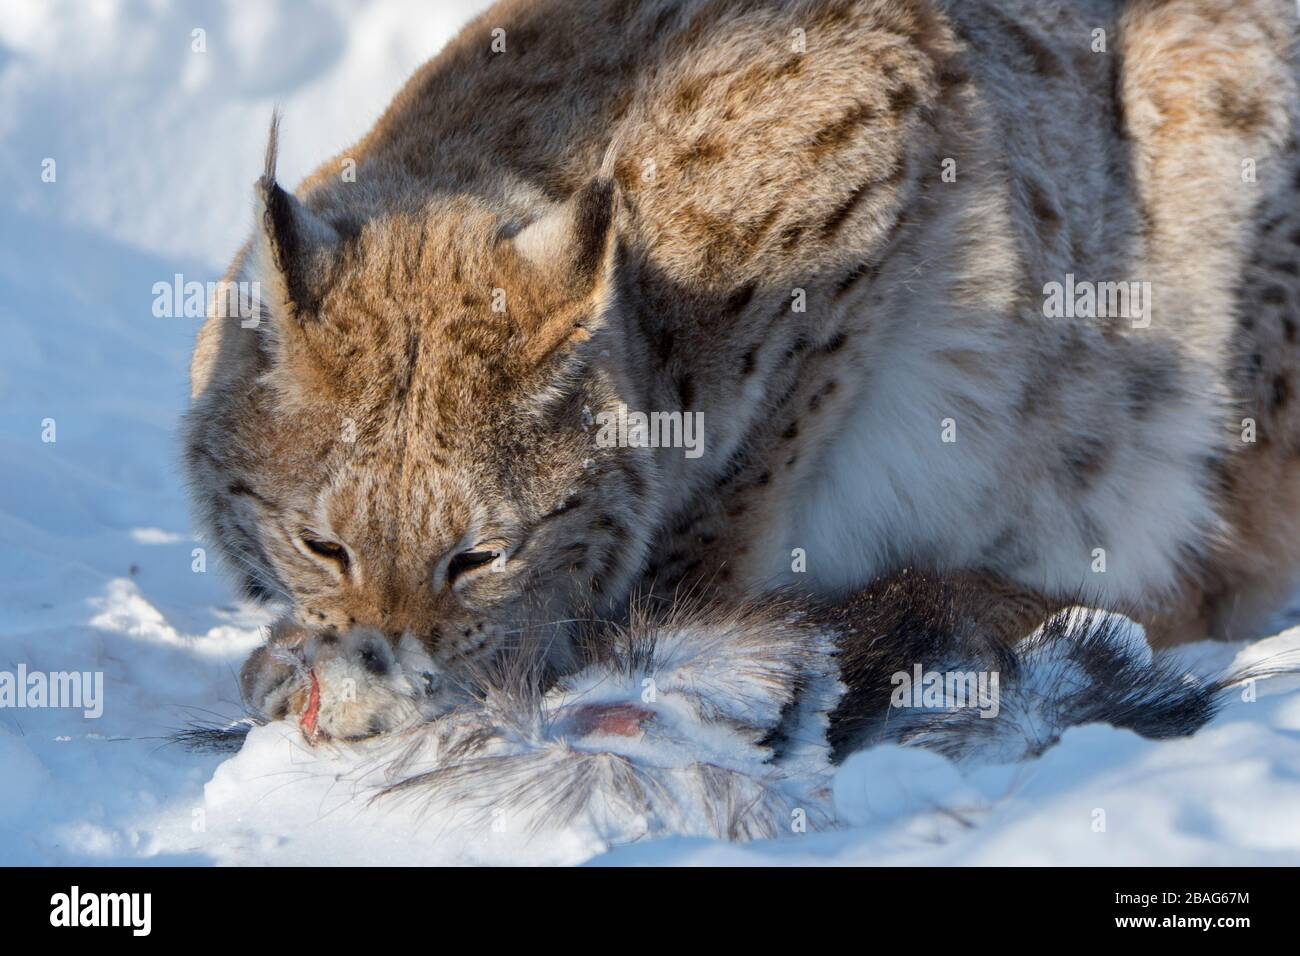 A Eurasian lynx (Lynx lynx) is feeding on the remains of a moose in the snow at a wildlife park in northern Norway. Stock Photo